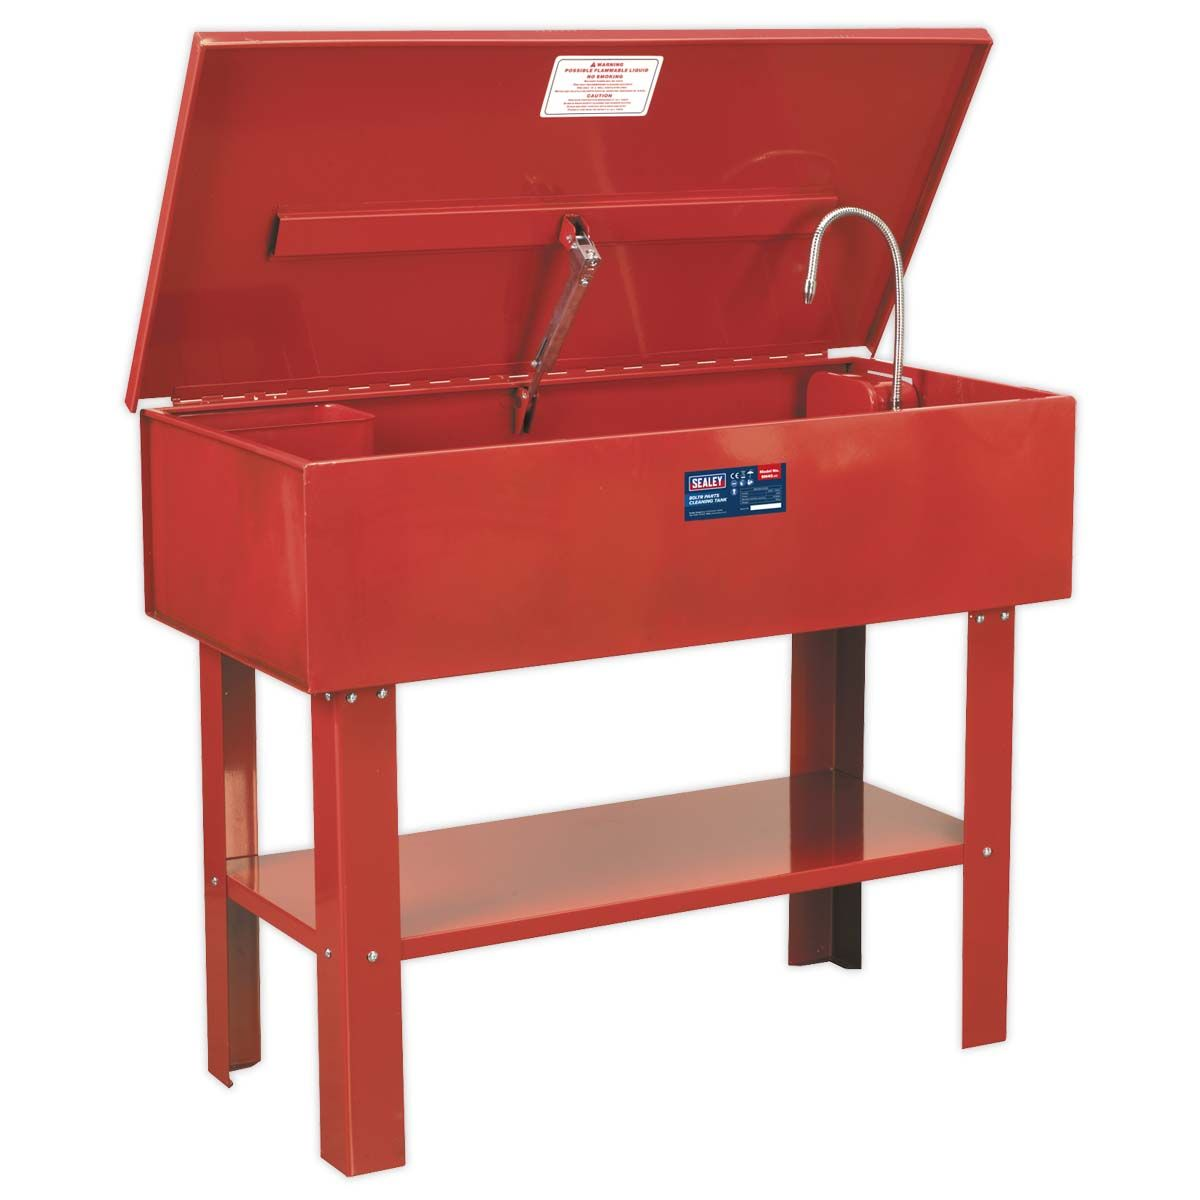 Sealey Parts Cleaning Tank